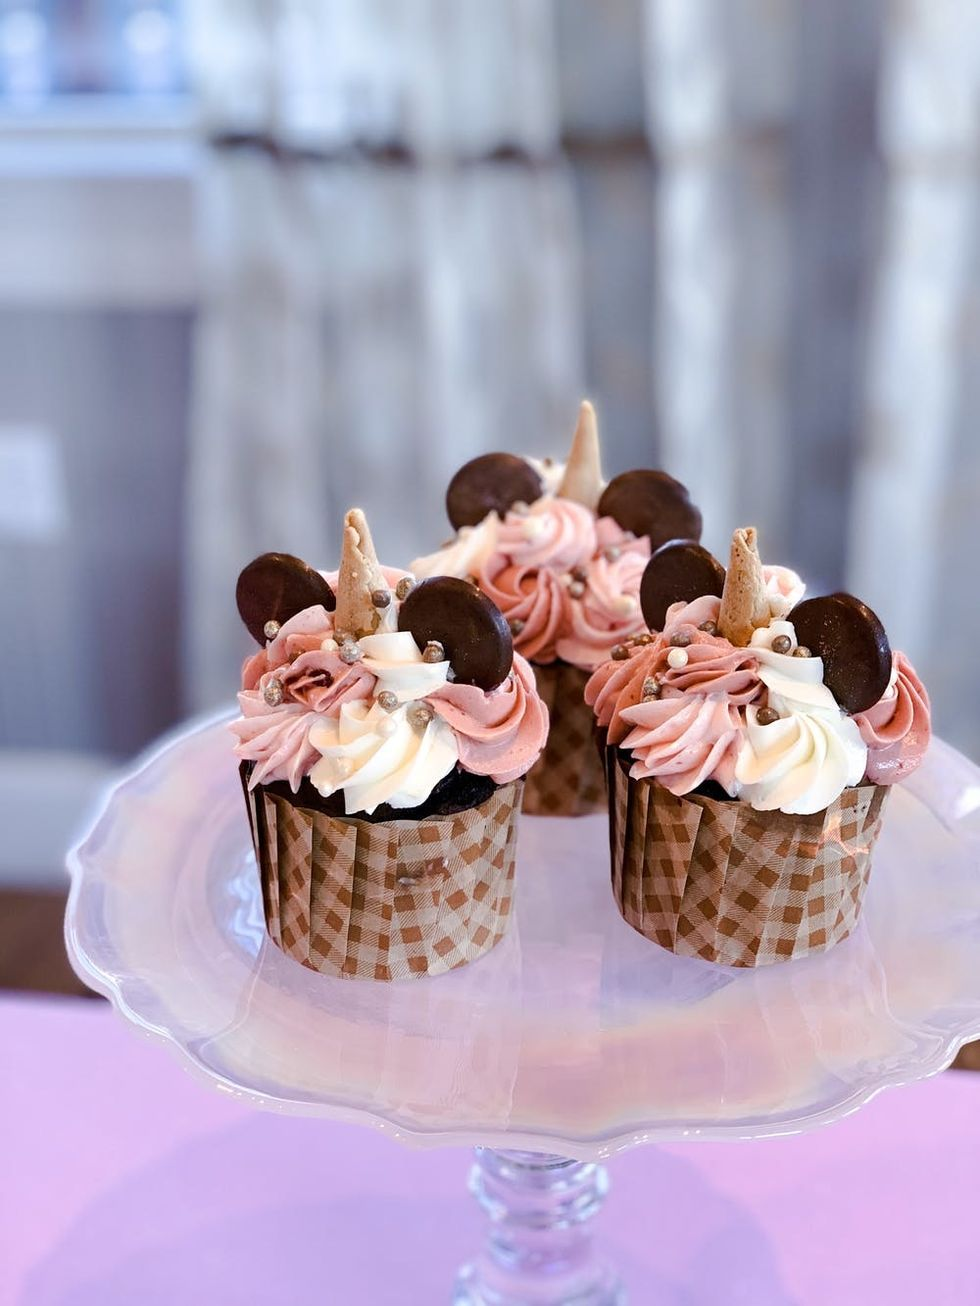 How to Make Disney Cupcakes Like a Pastry Chef